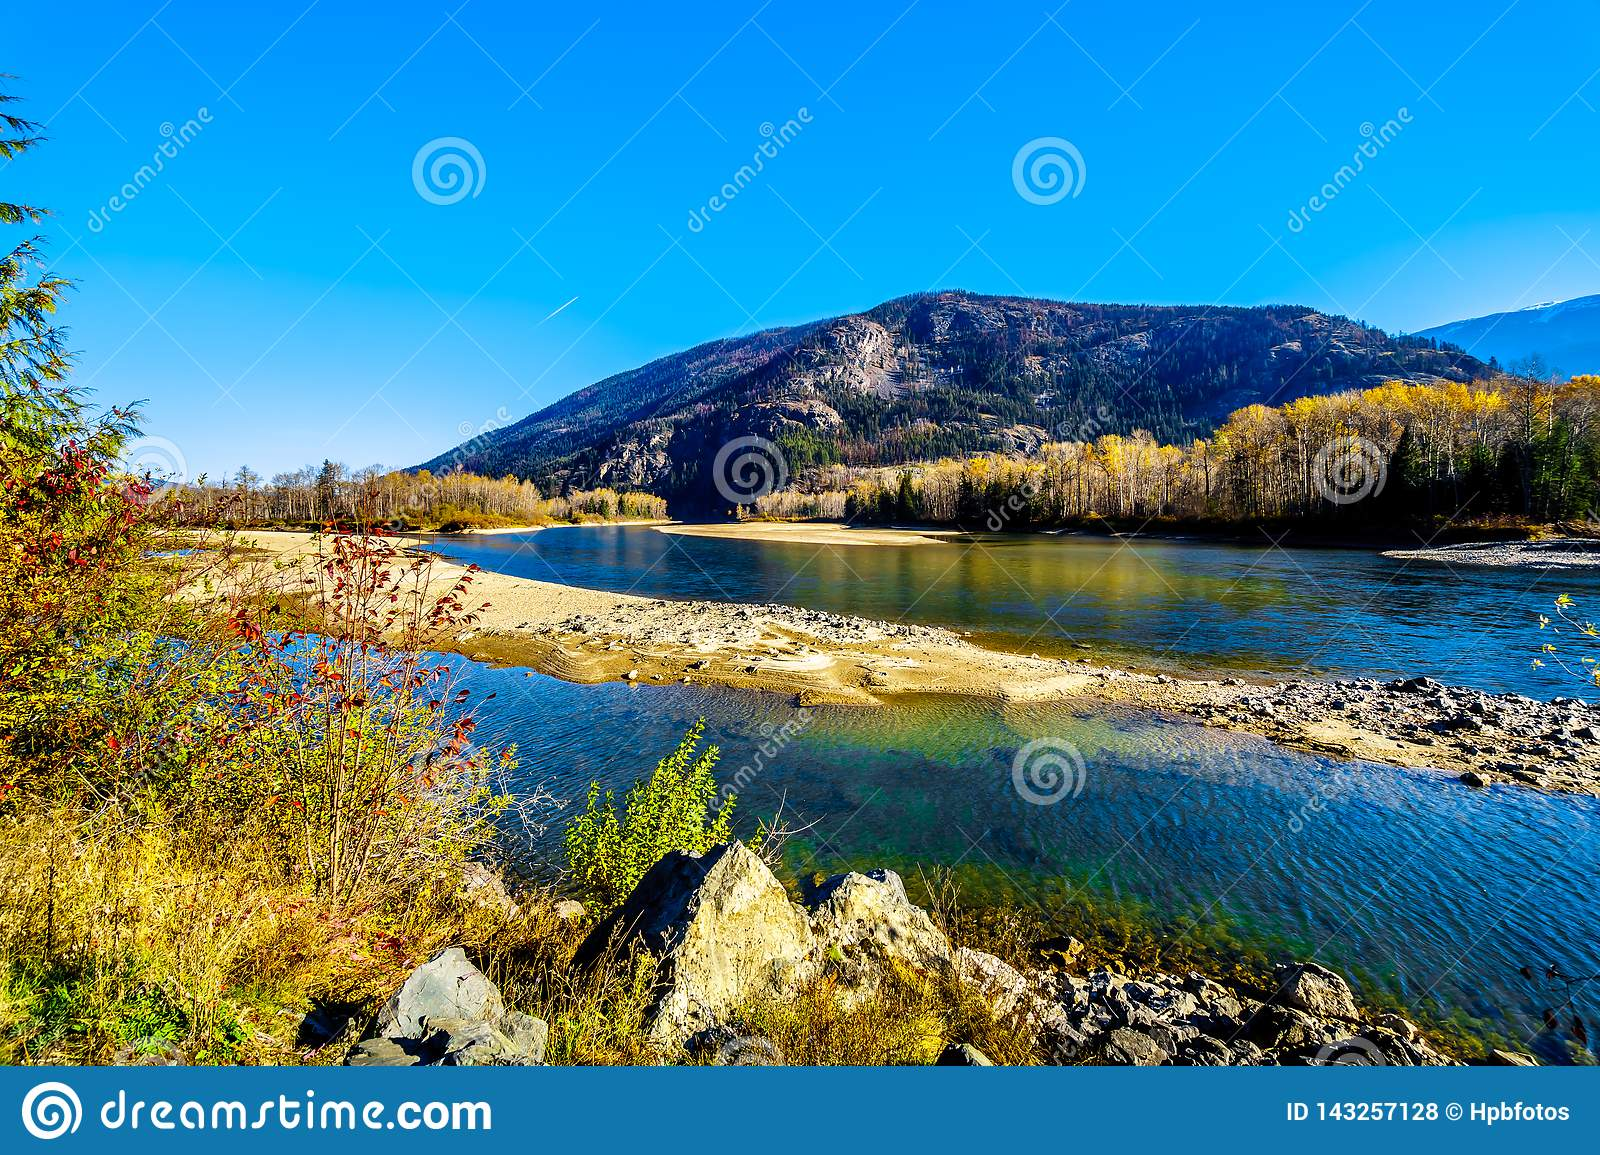 Fall colors around the North Thompson River between Barriere and Clearwater, BC